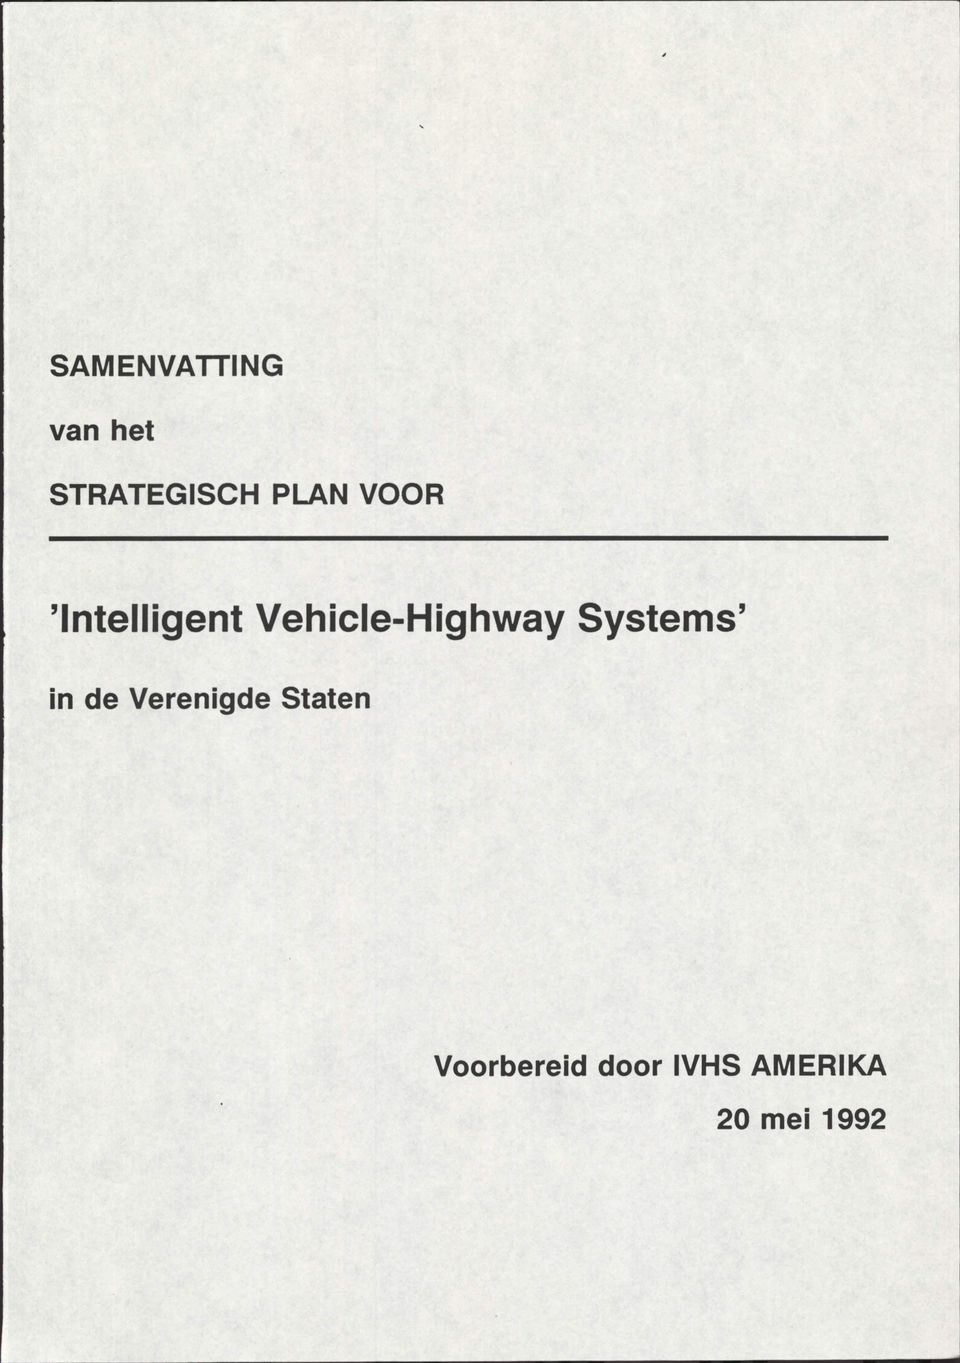 Vehicle-Highway Systems' in de